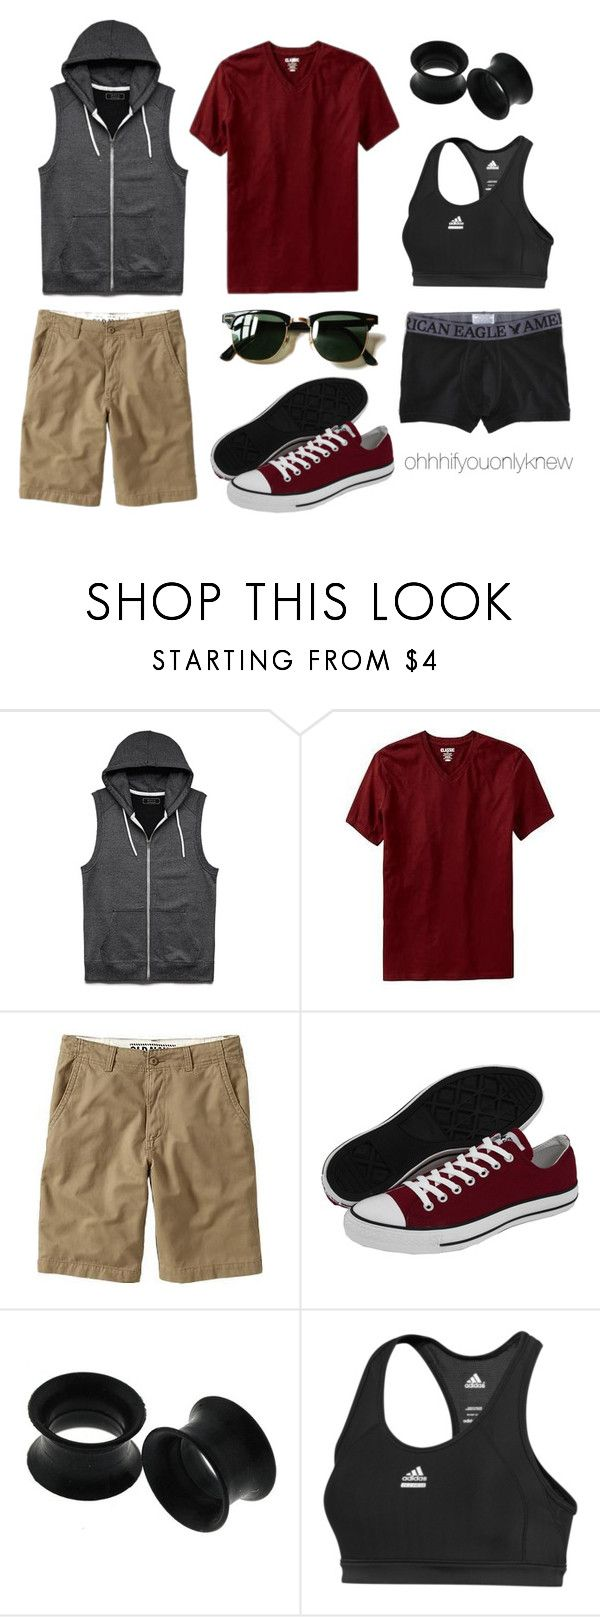 """Untitled #224"" by ohhhifyouonlyknew ❤ liked on Polyvore featuring 21 Men, Old Navy, Ray-Ban, Converse, adidas and American Eagle Outfitters"